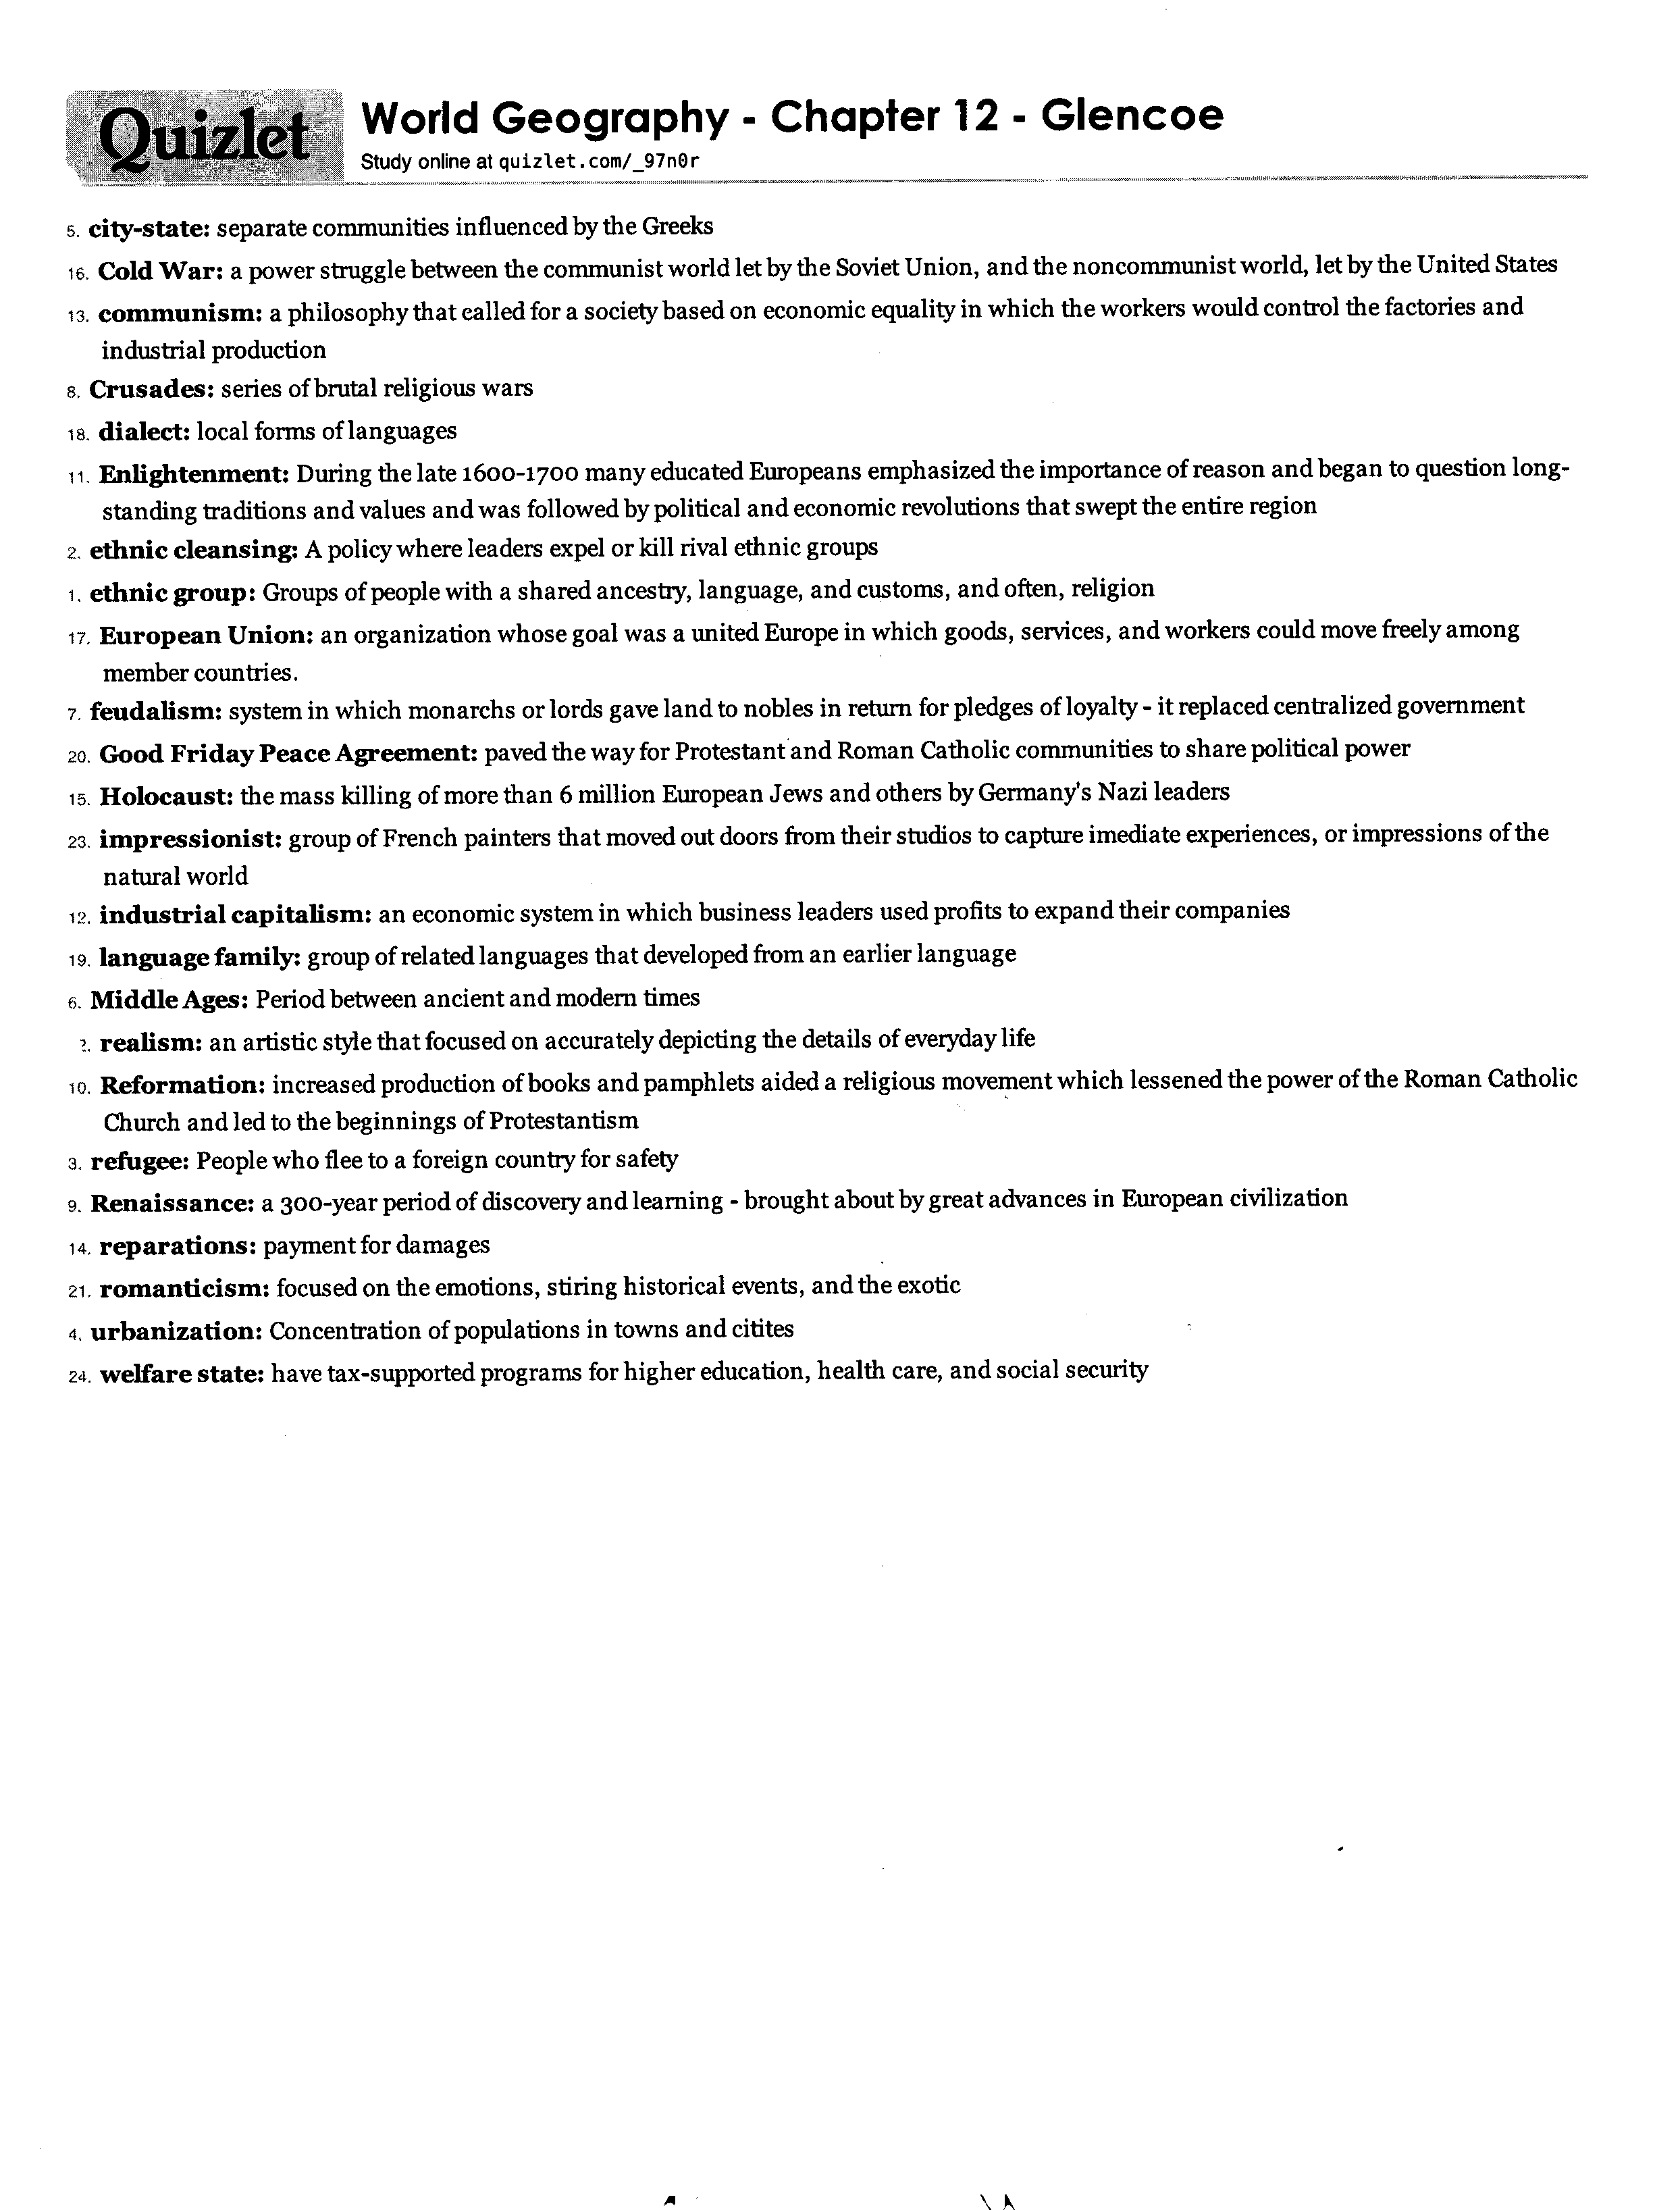 Free Worksheets the mcgraw-hill companies worksheet answers : Glencoe World History Worksheet Answers - wiildcreative